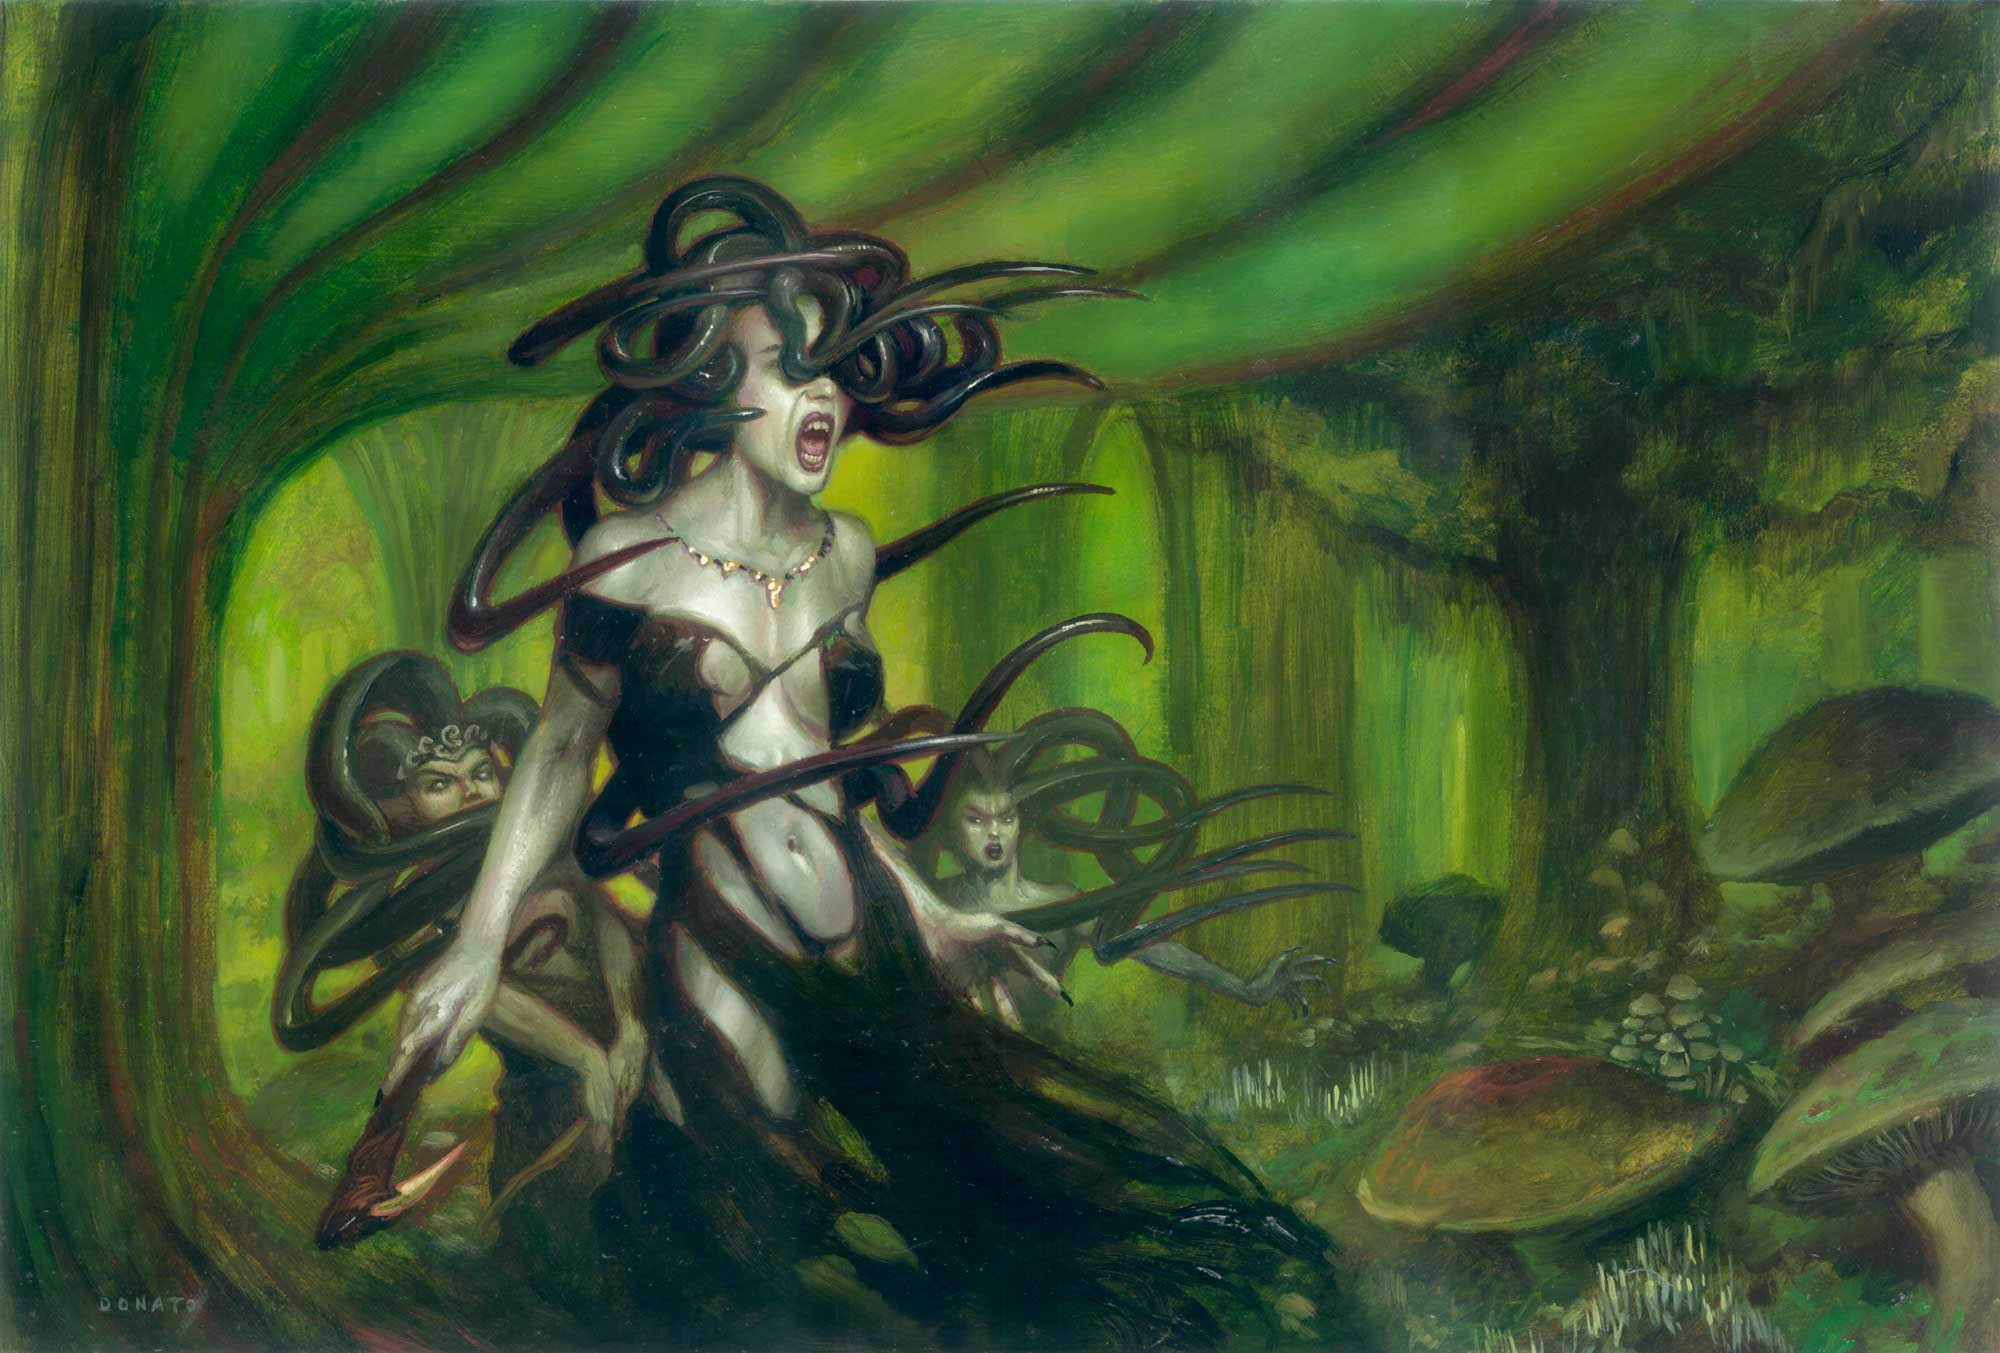 "Sisters of the Stone Death Ravnica 15"" x 20""  Oil on Panel private collection"